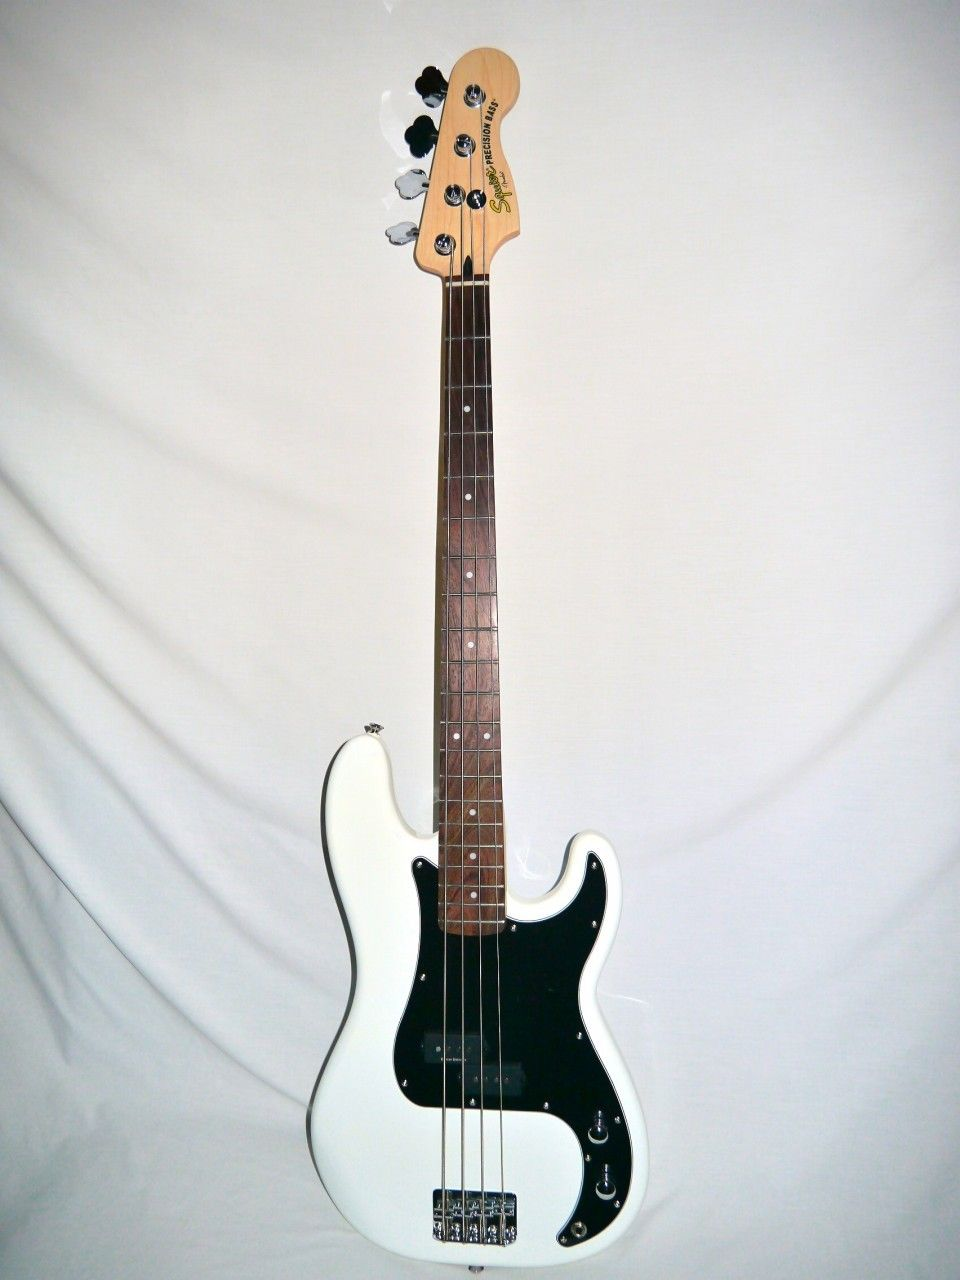 My eb bass squier vintage modified jazz bass - Indian Creek Guitars Squier Vintage Modified Precision Bass Olympic White Http